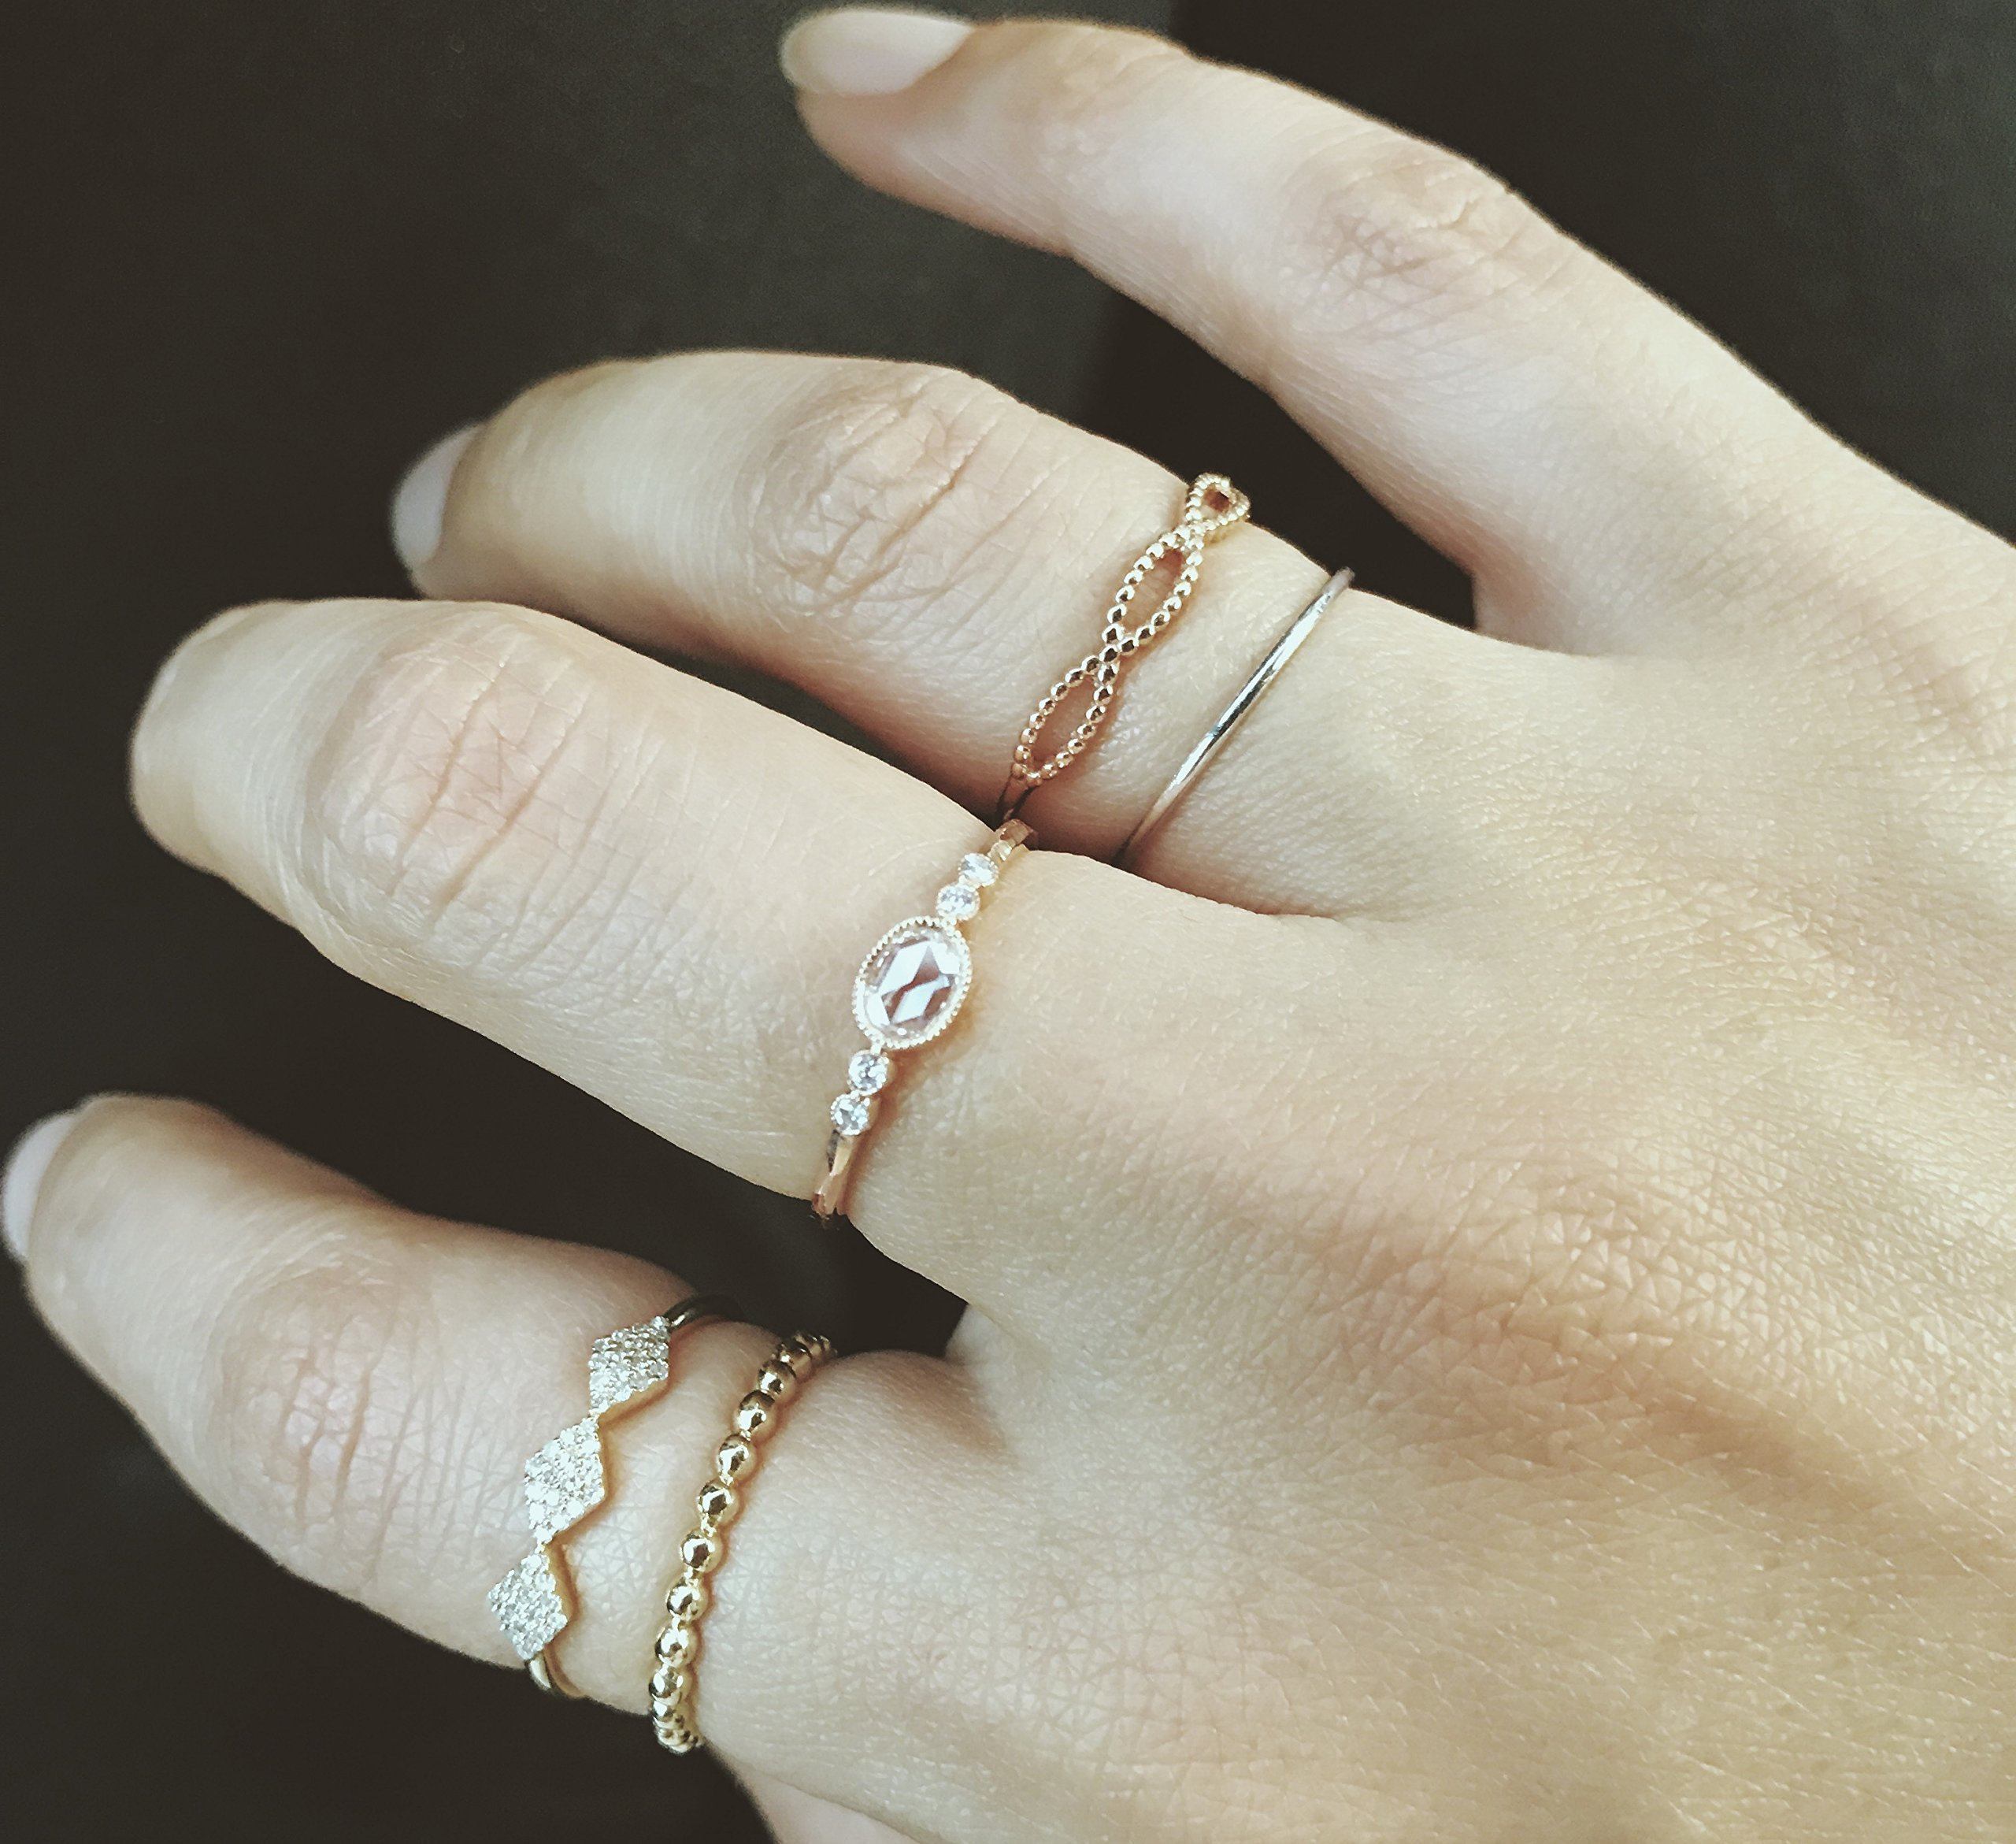 Minimalist Ring, Beaded Ring, Stacking Ring, 14K Solid Gold Ball Ring, Gold Ring, Unique Ring, Dainty Ring